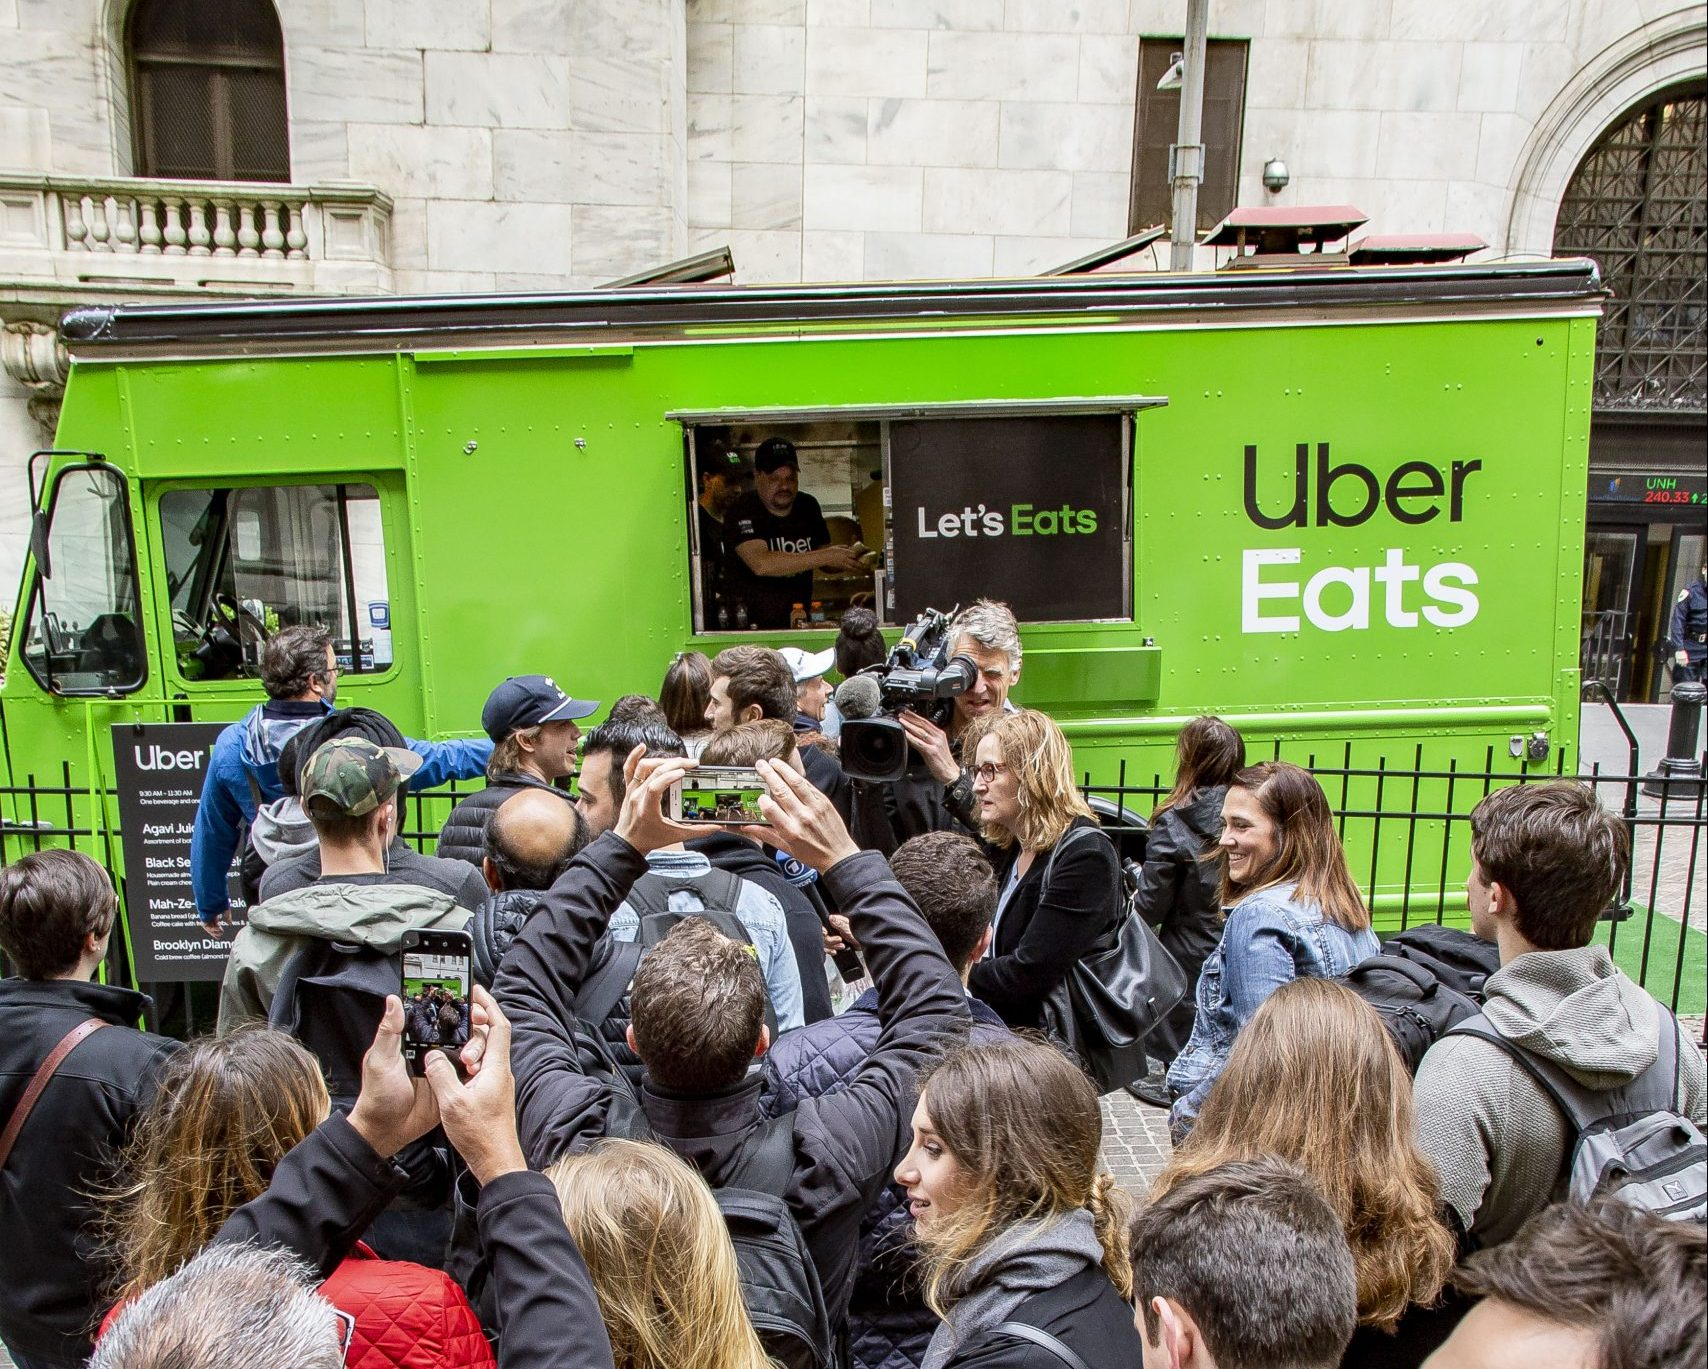 Uber Food Truck Promotion for their IPO